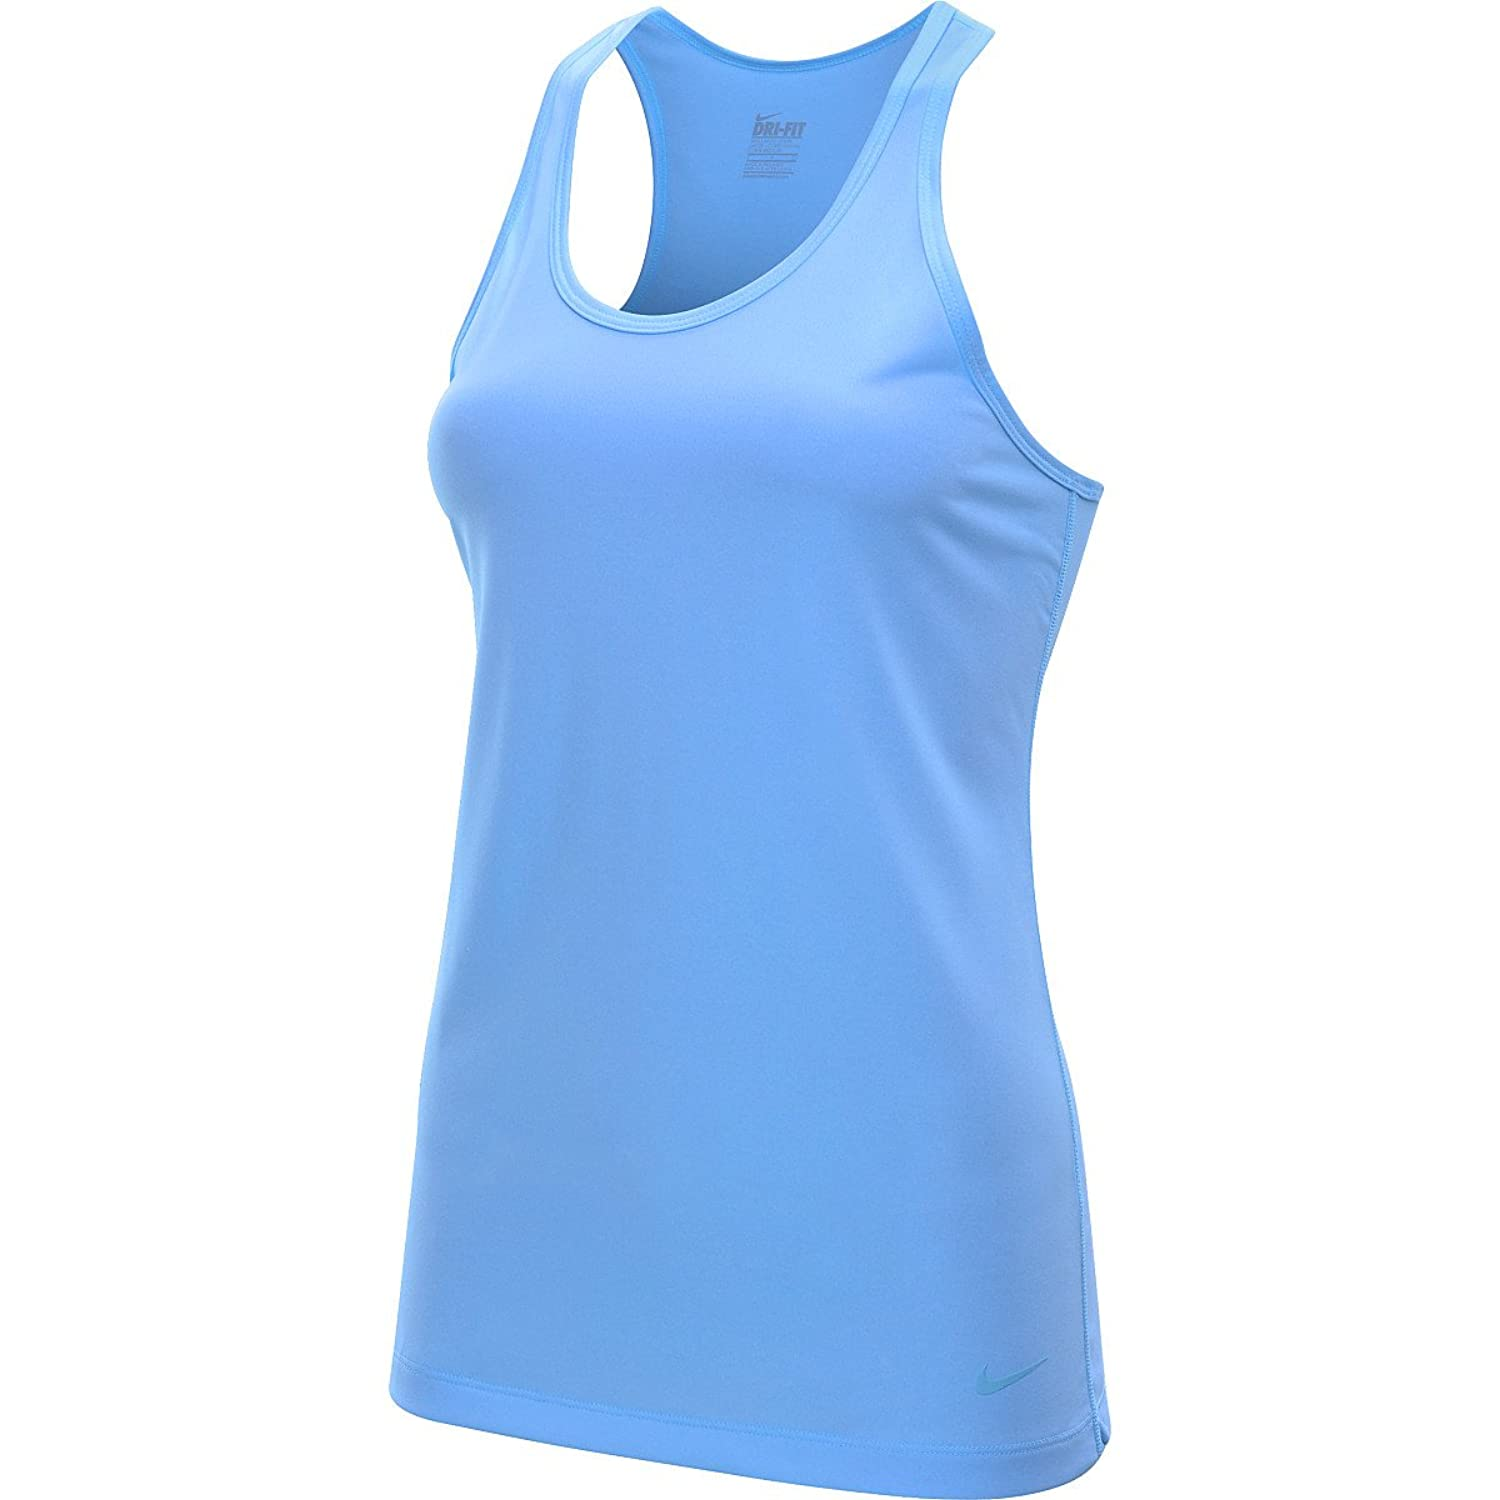 Women's Nike Legend Tank